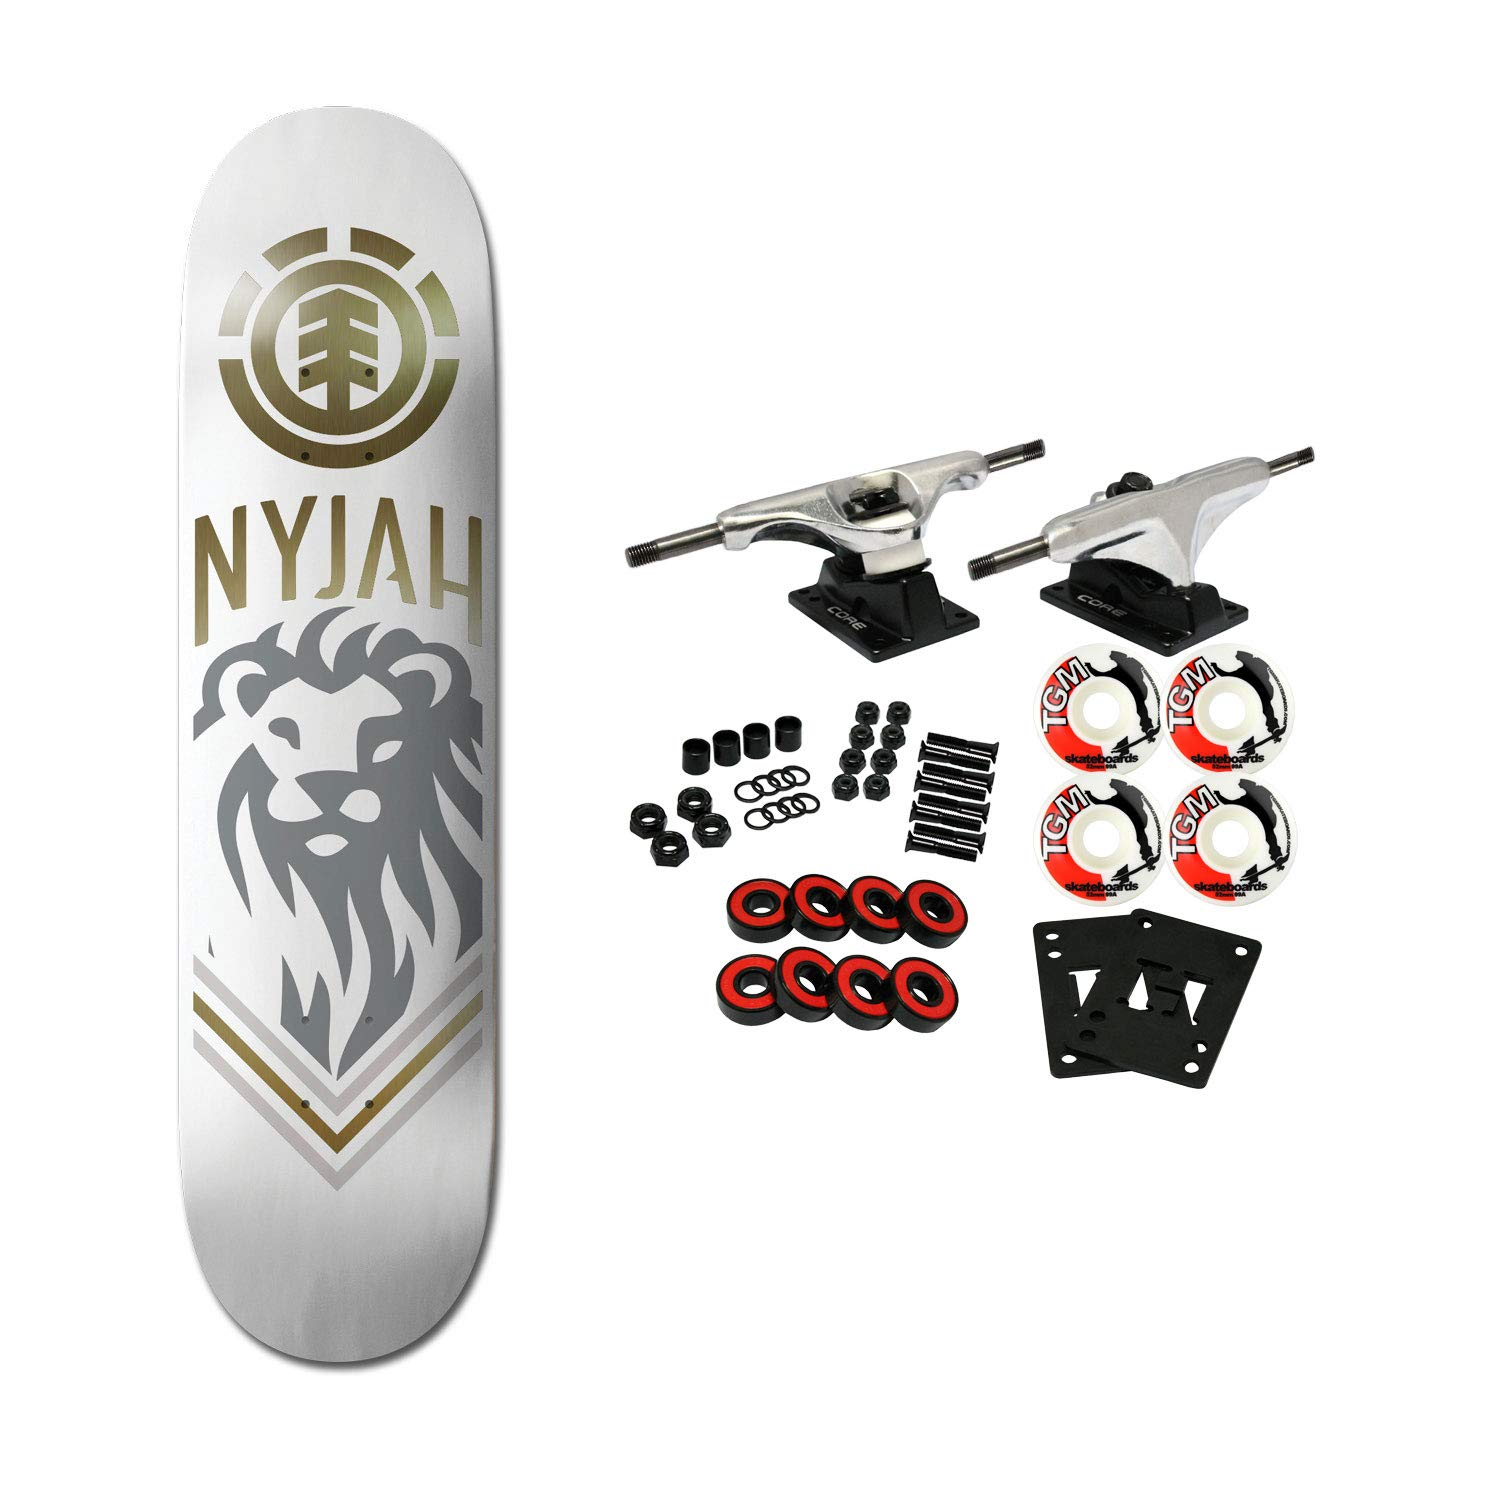 7b903eac86176 Amazon.com : Element Skateboards Complete Nyjah Huston White Lion ...